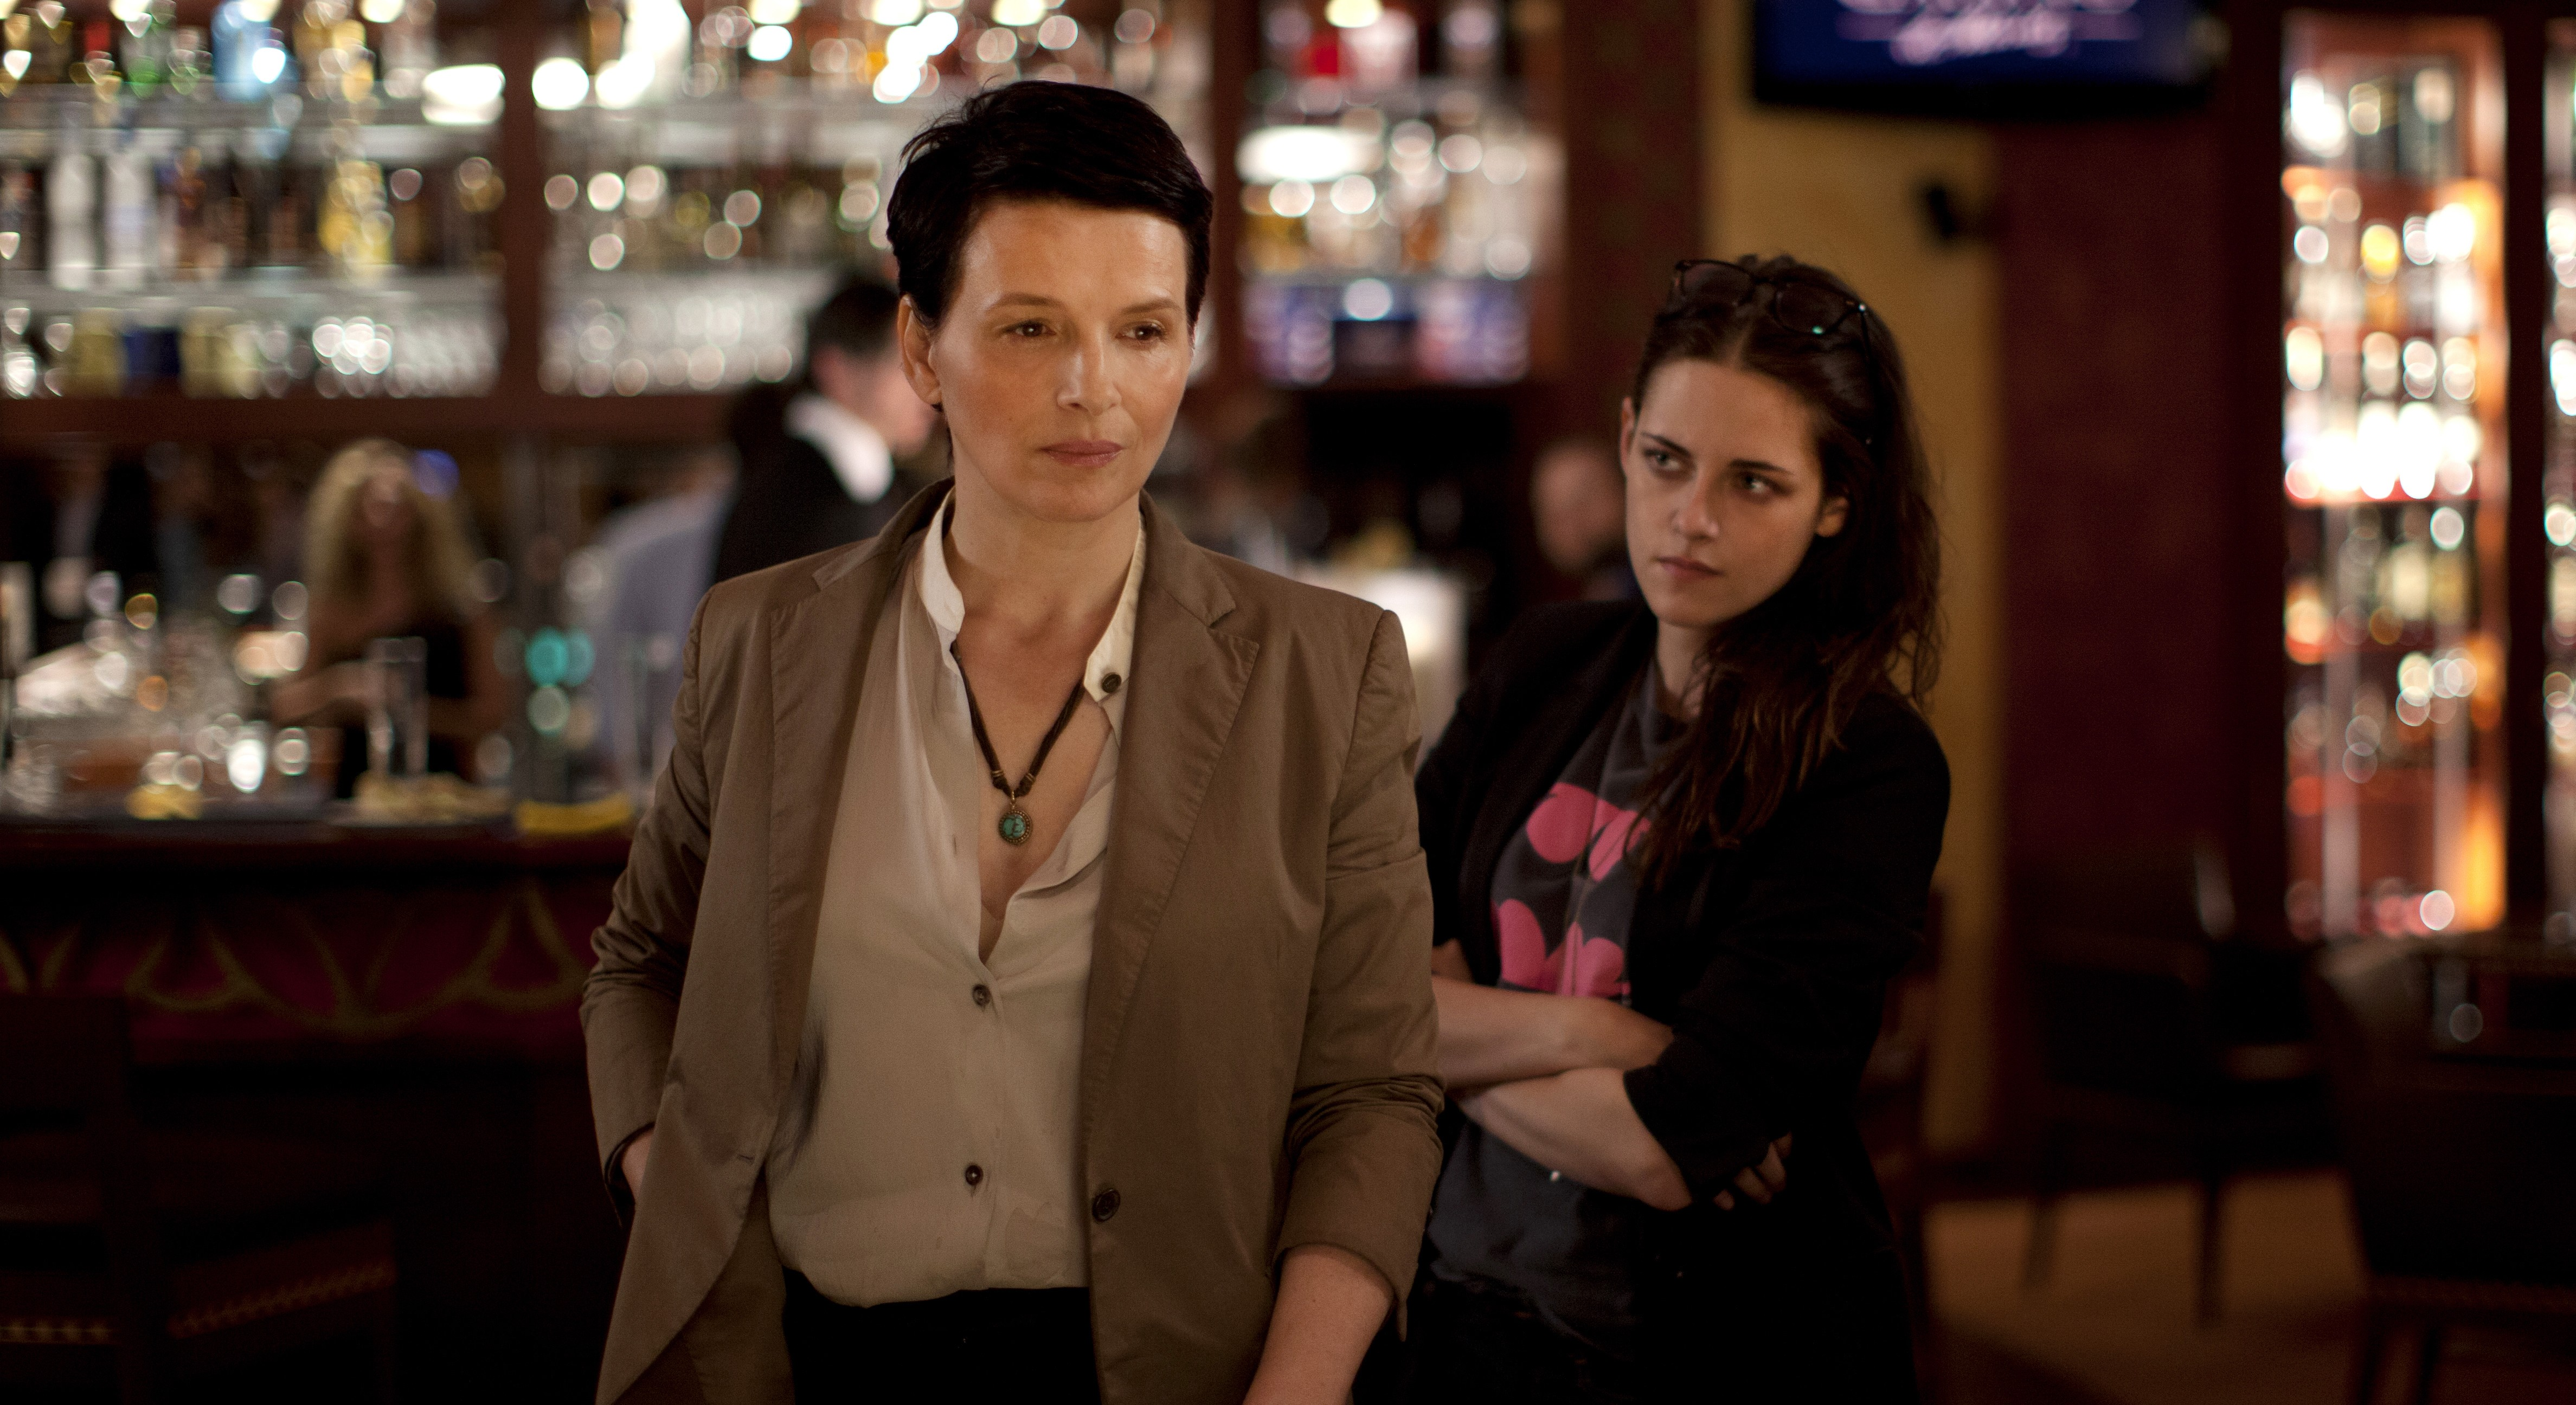 Clouds-of-Sils-Maria-9